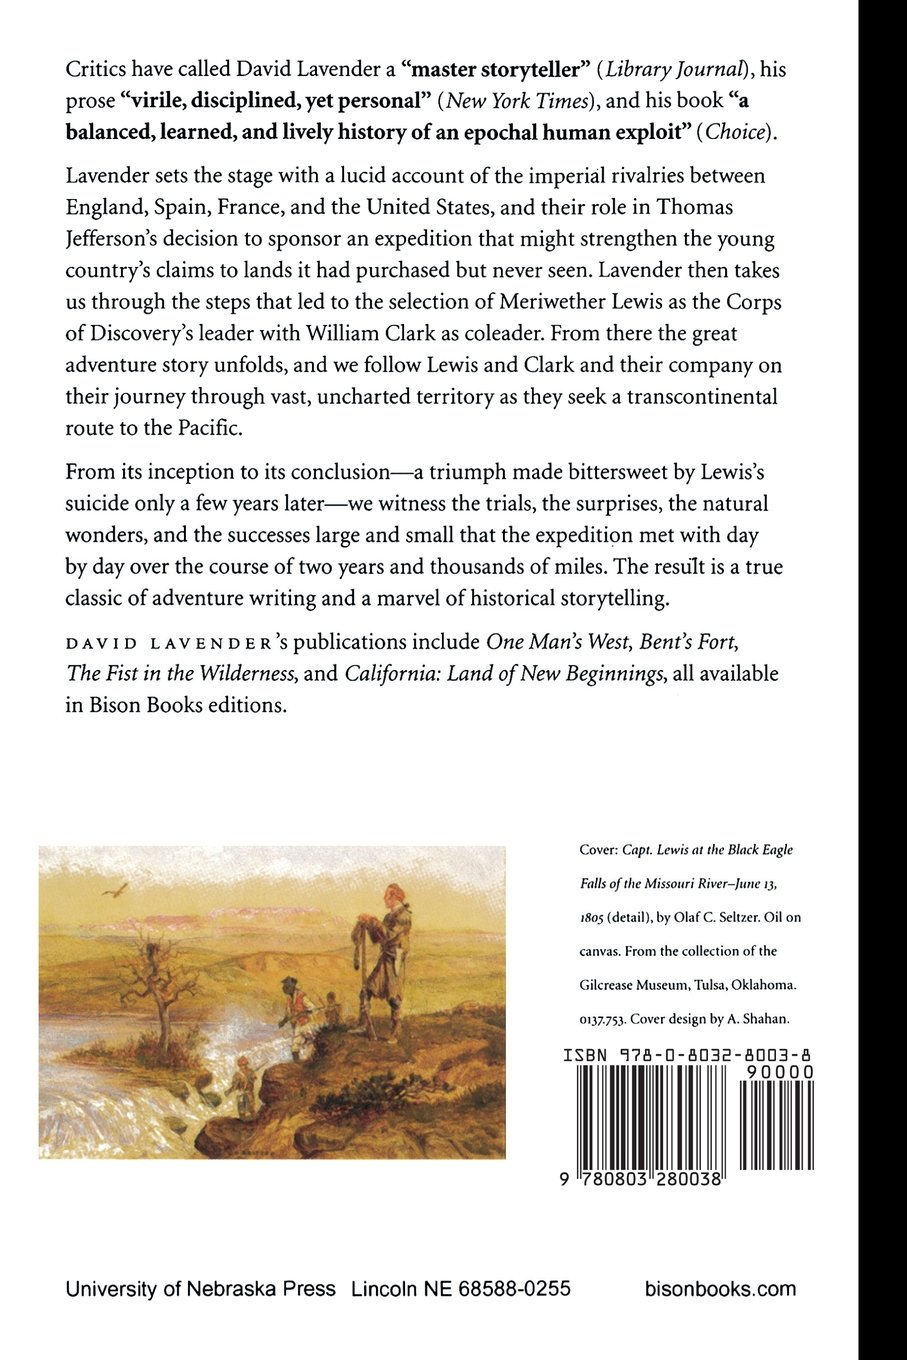 The Way to the Western Sea: Lewis and Clark across the Continent: David  Lavender: 9780803280038: Amazon.com: Books